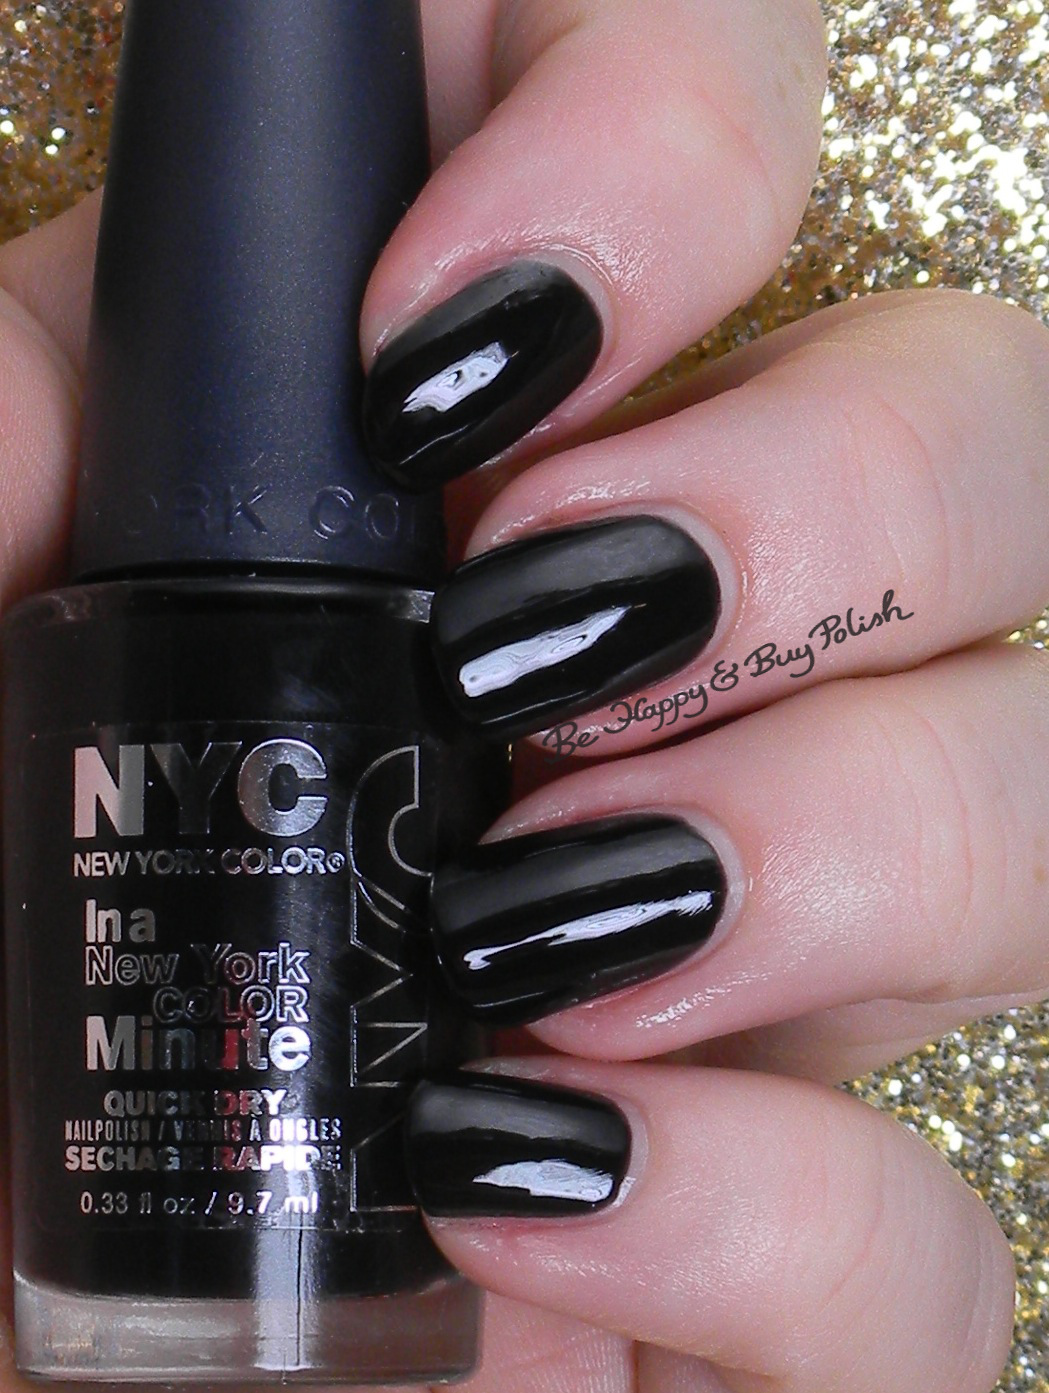 NYC New York Color Midnight Beauty nail polish collection | Be Happy ...